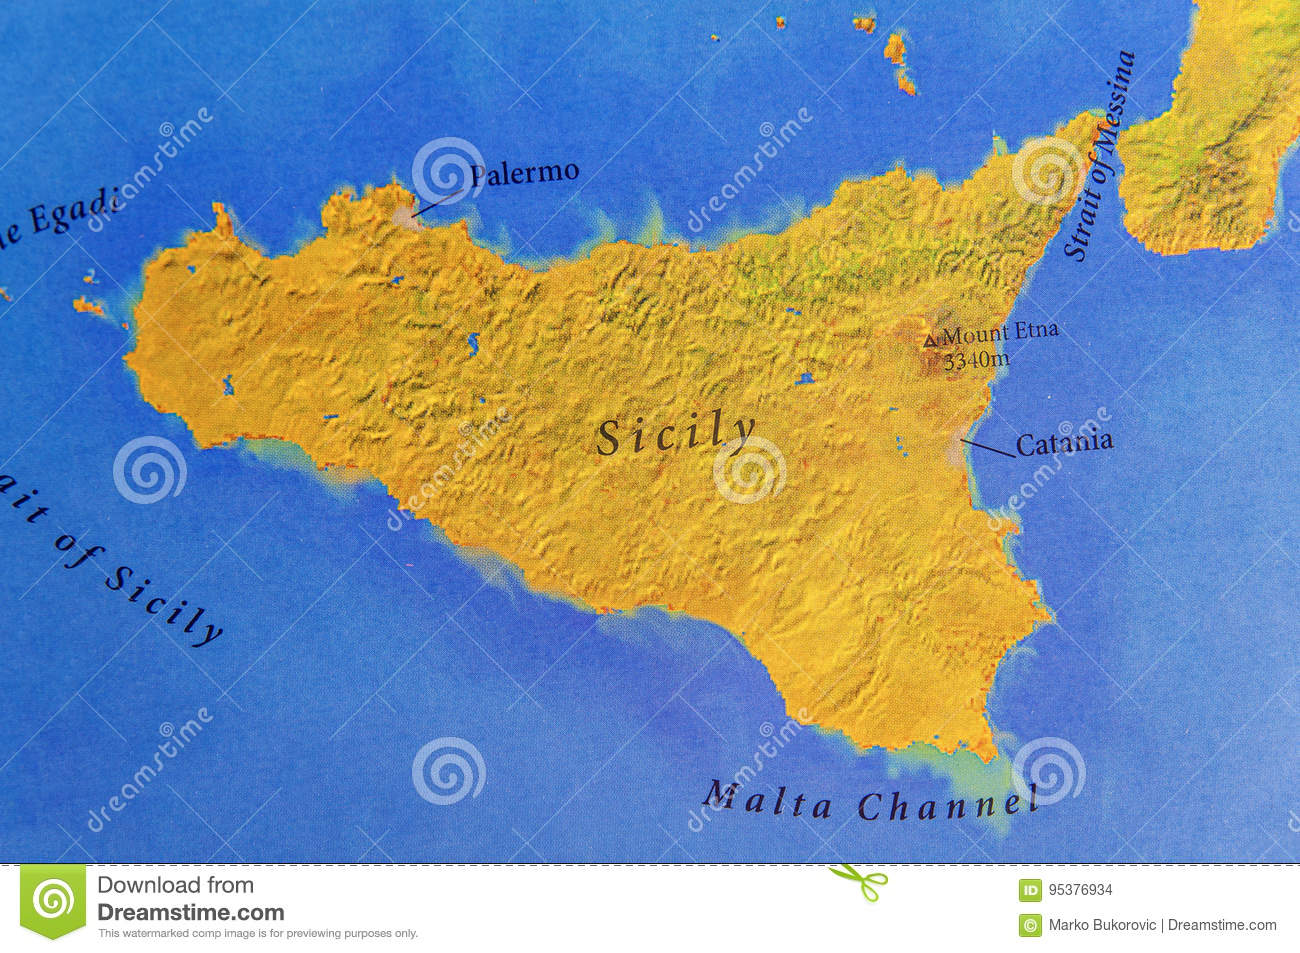 Sicilia Cartina isole